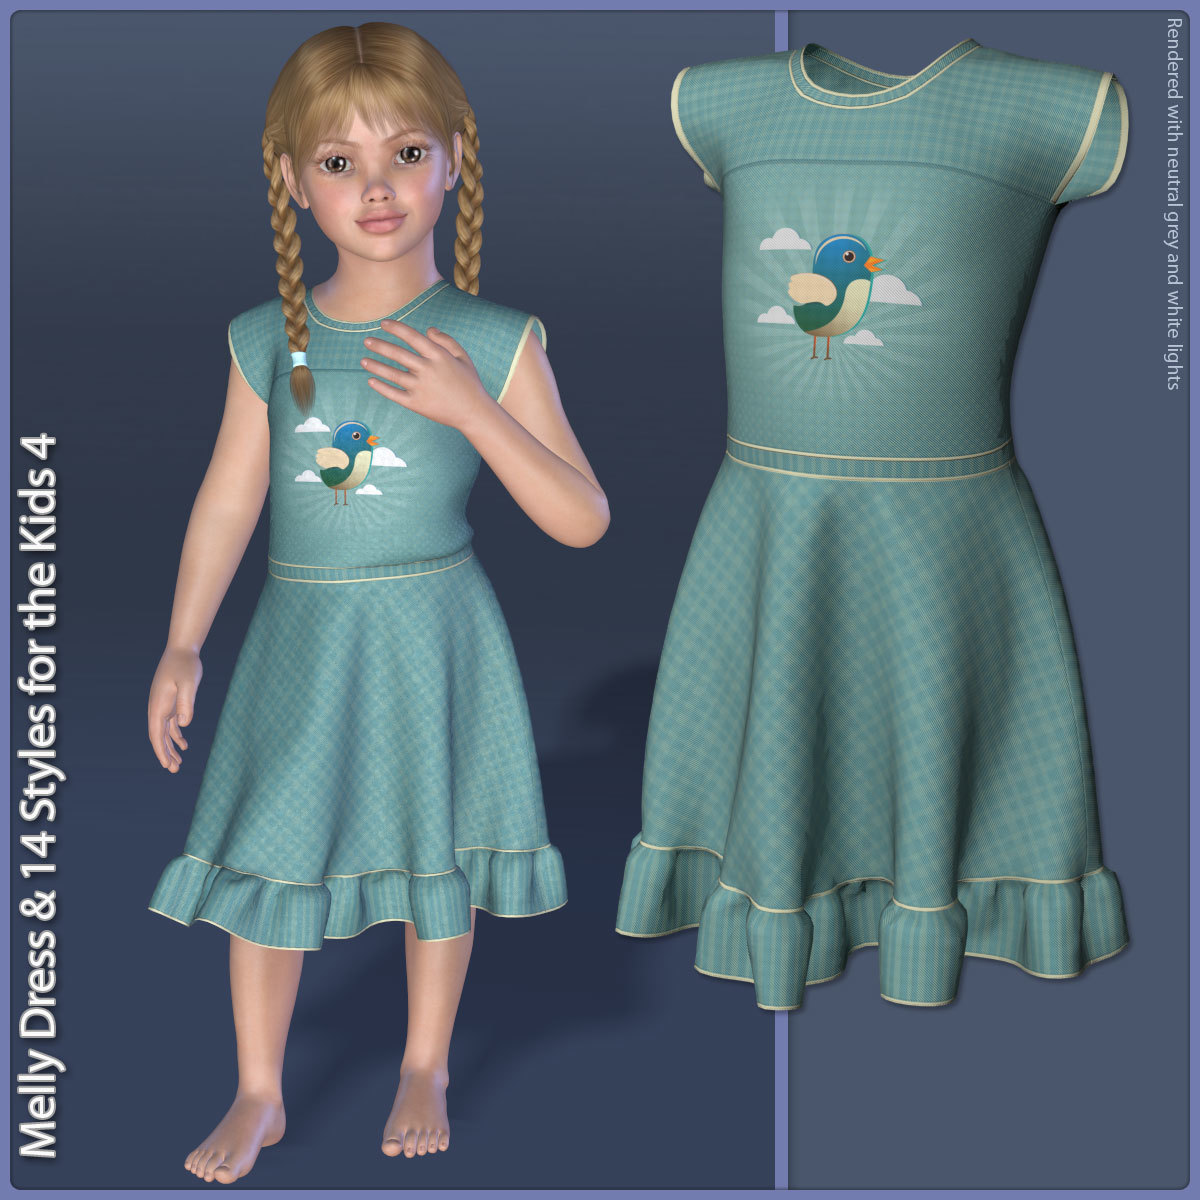 Melly Dress and 14 Styles for the Kids 4